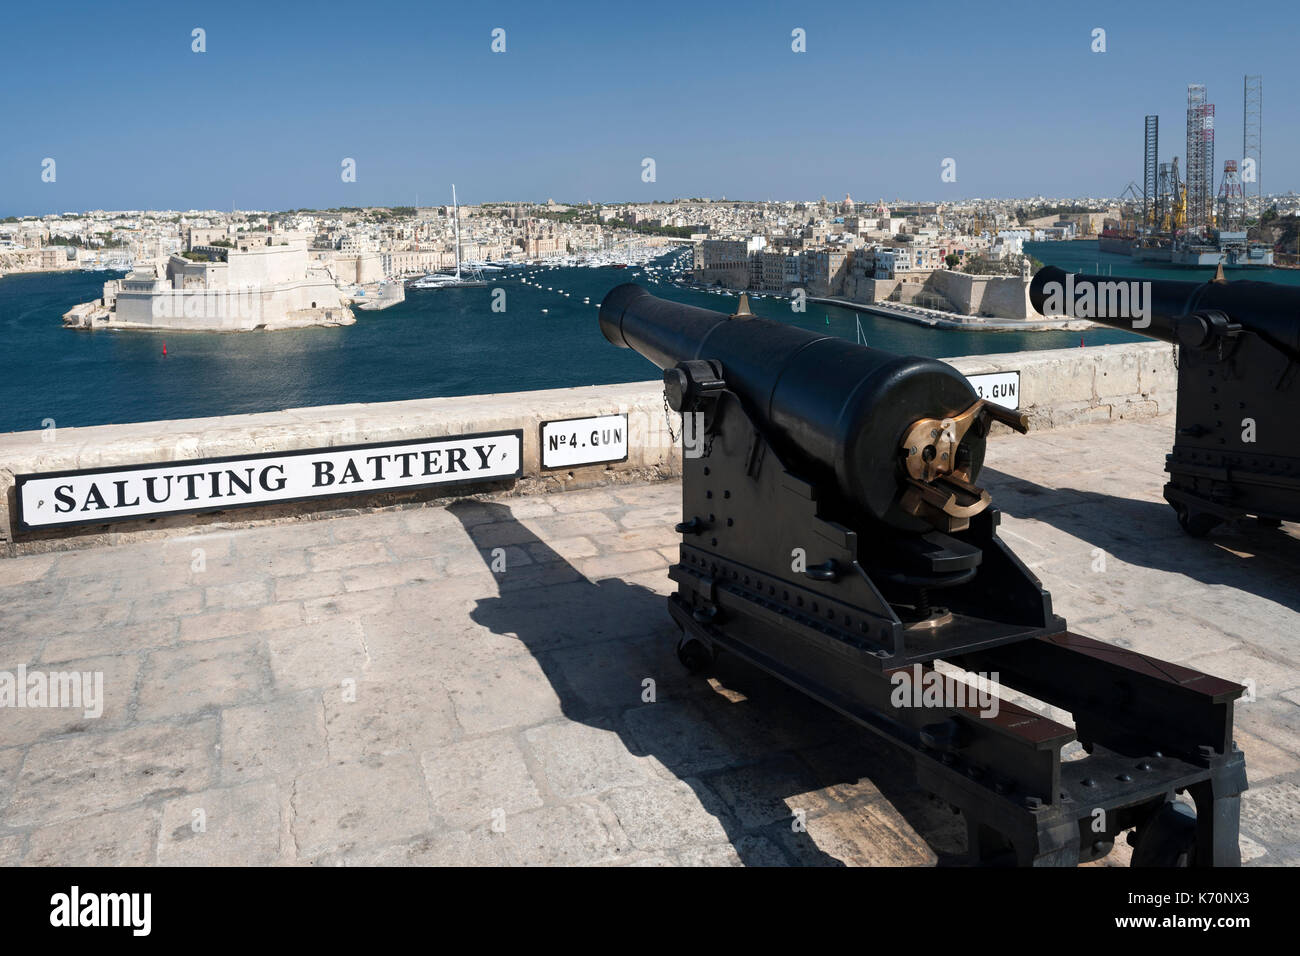 Cannons at the Saluting Battery in Valletta, the capital of Malta. - Stock Image